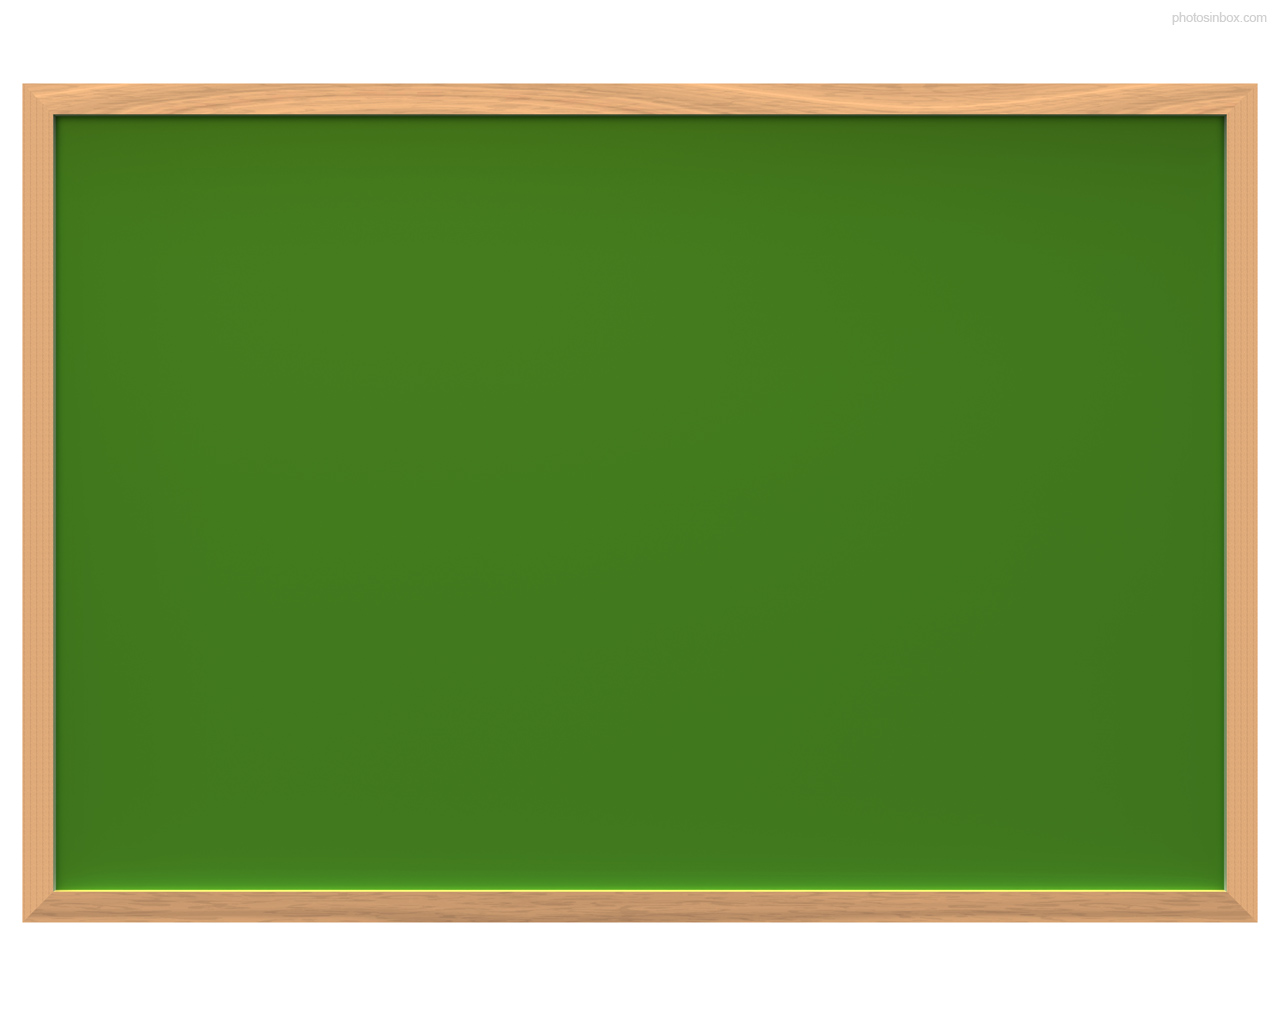 Chalkboard Backgrounds For Powerpoint   Clipart Panda   Free Clipart